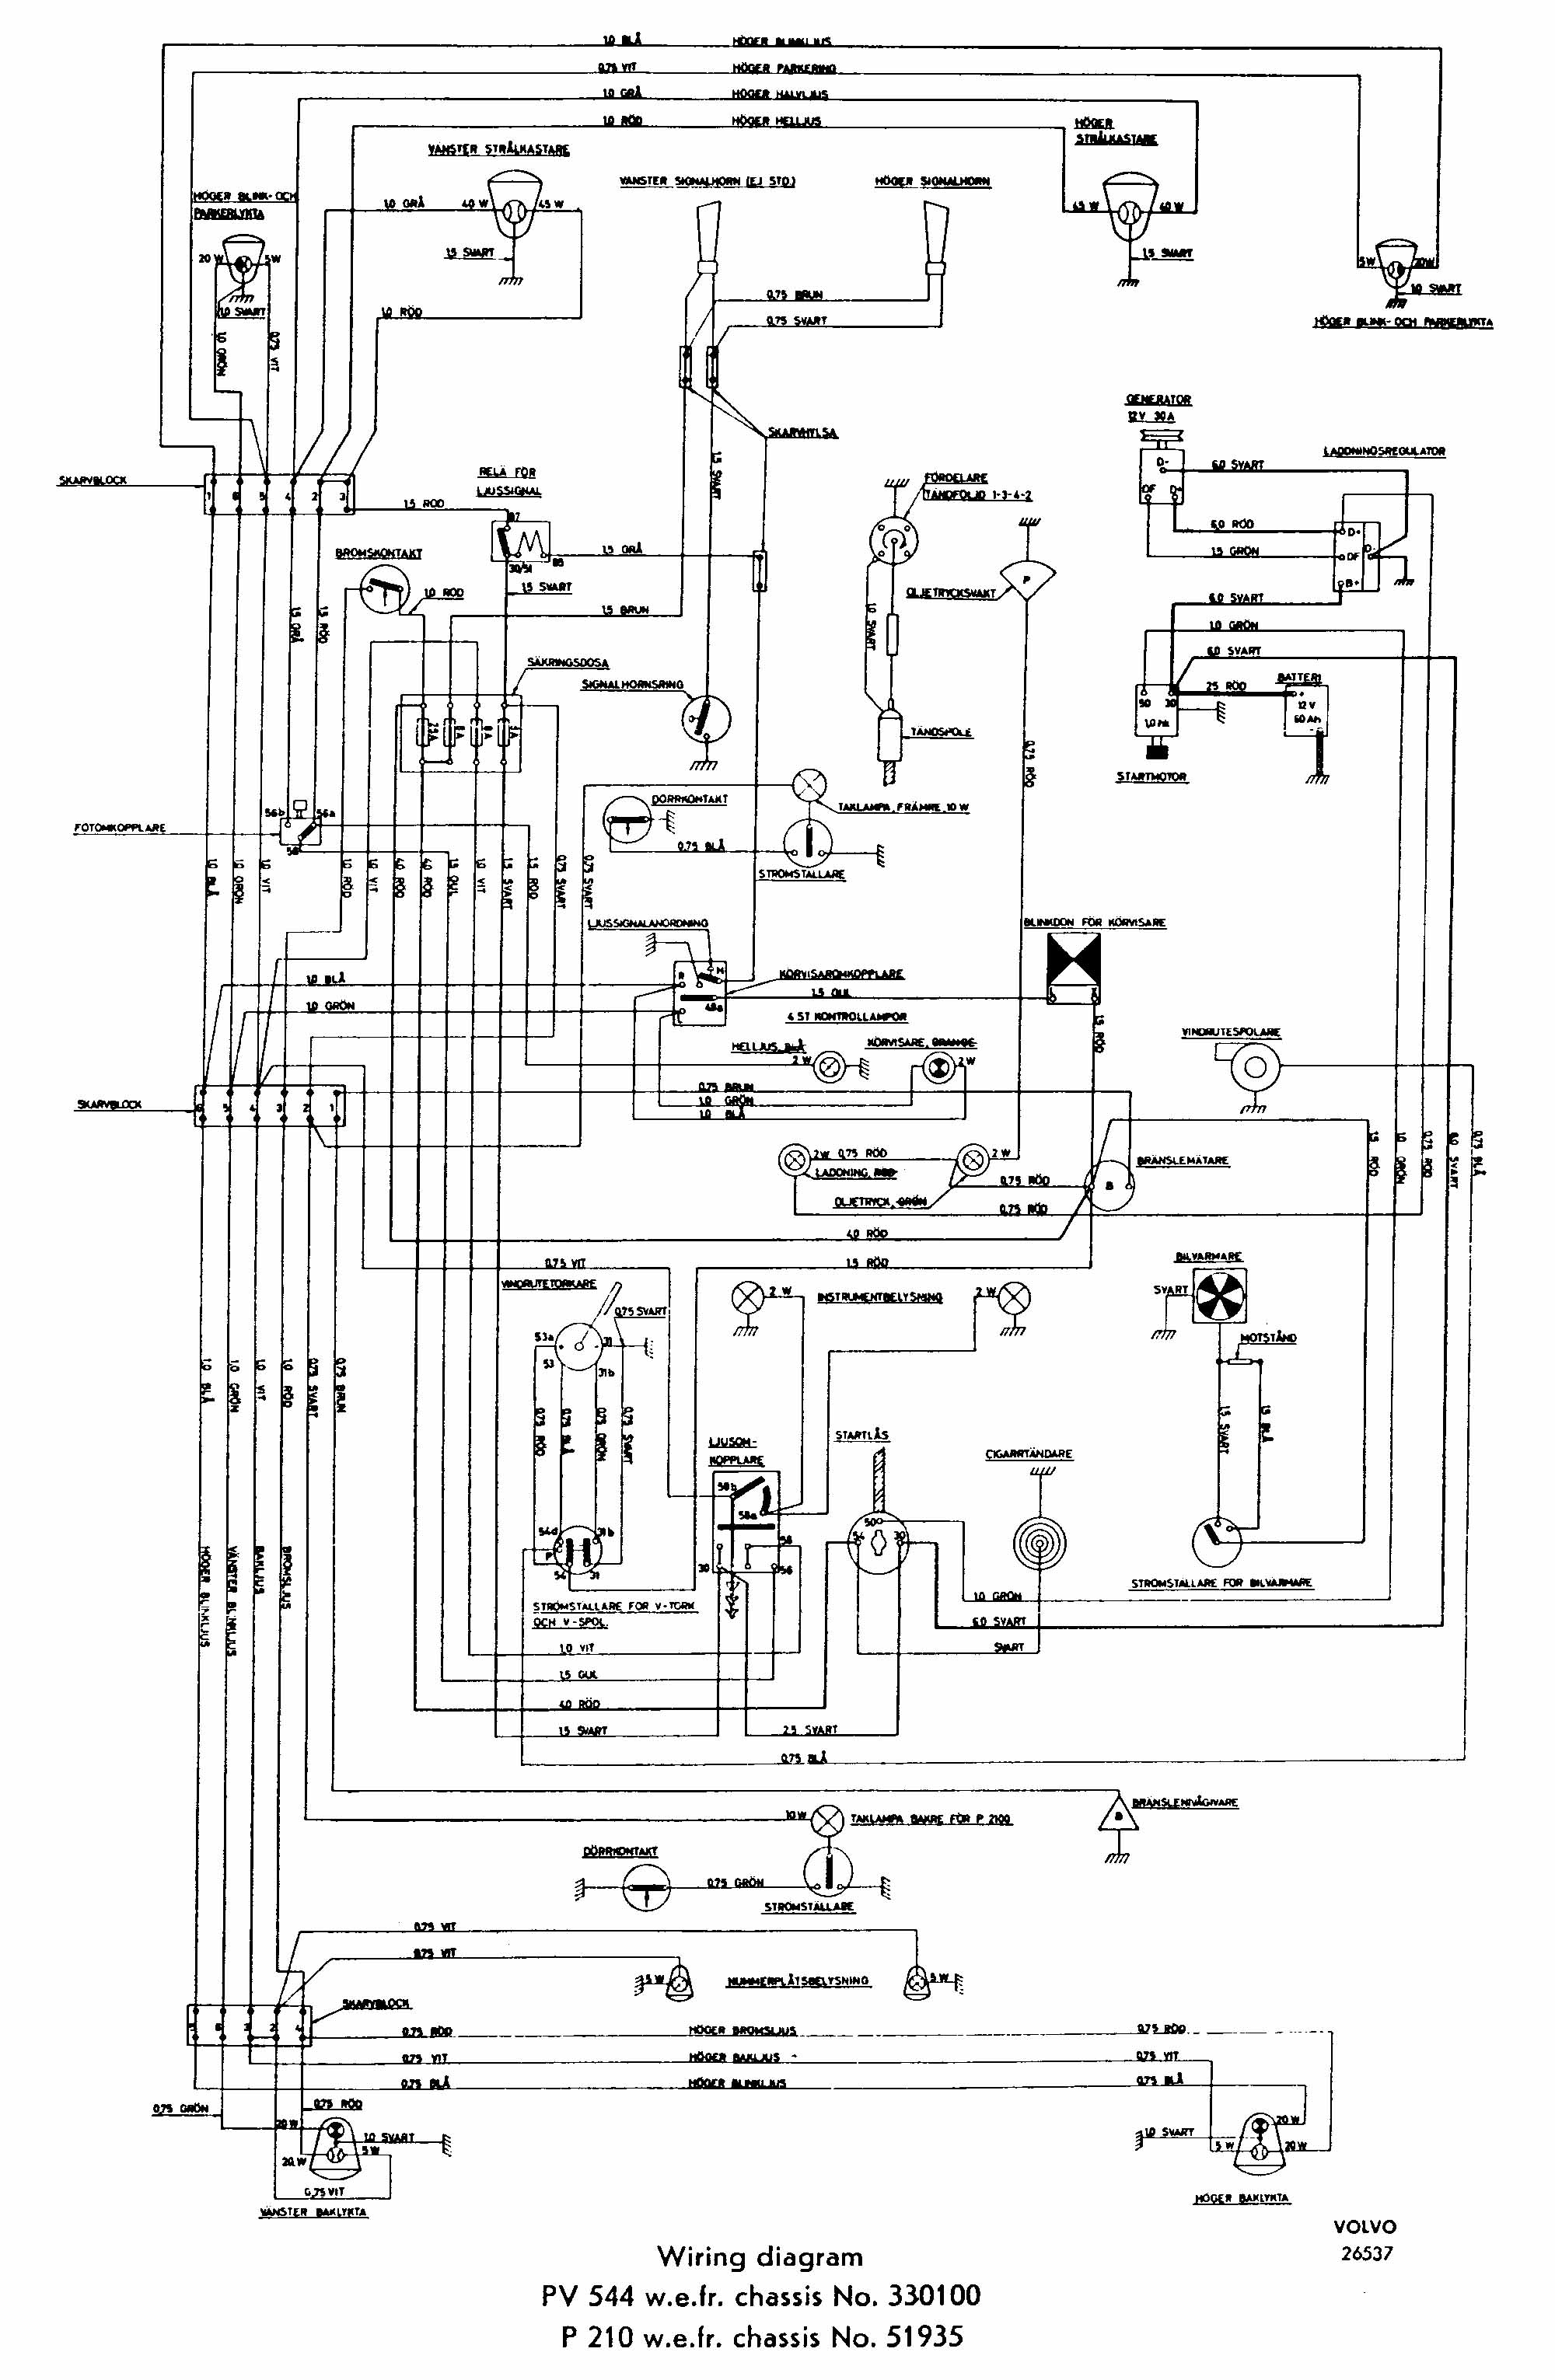 Sw Em Service Notes Ac Motor Wiring Diagram Sd Picture 544 210